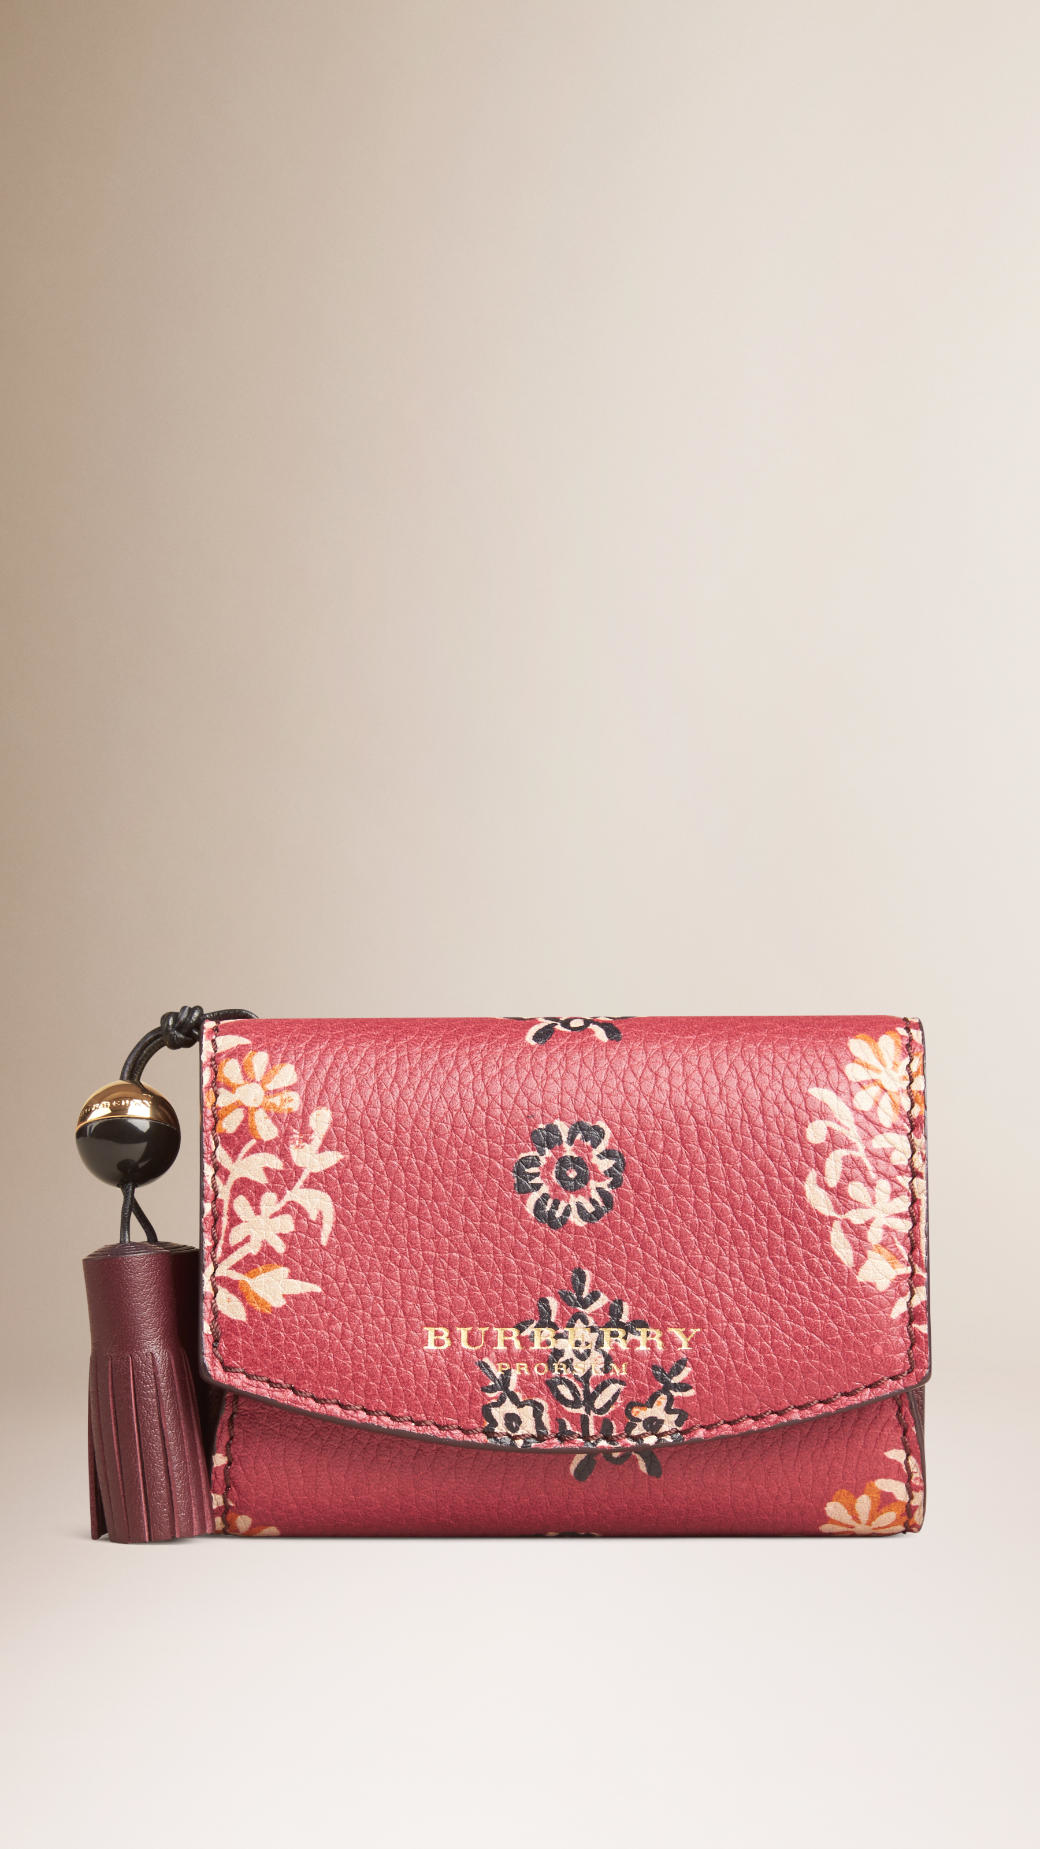 Burberry Ornate Floral Print Leather Wallet In Pink Lyst